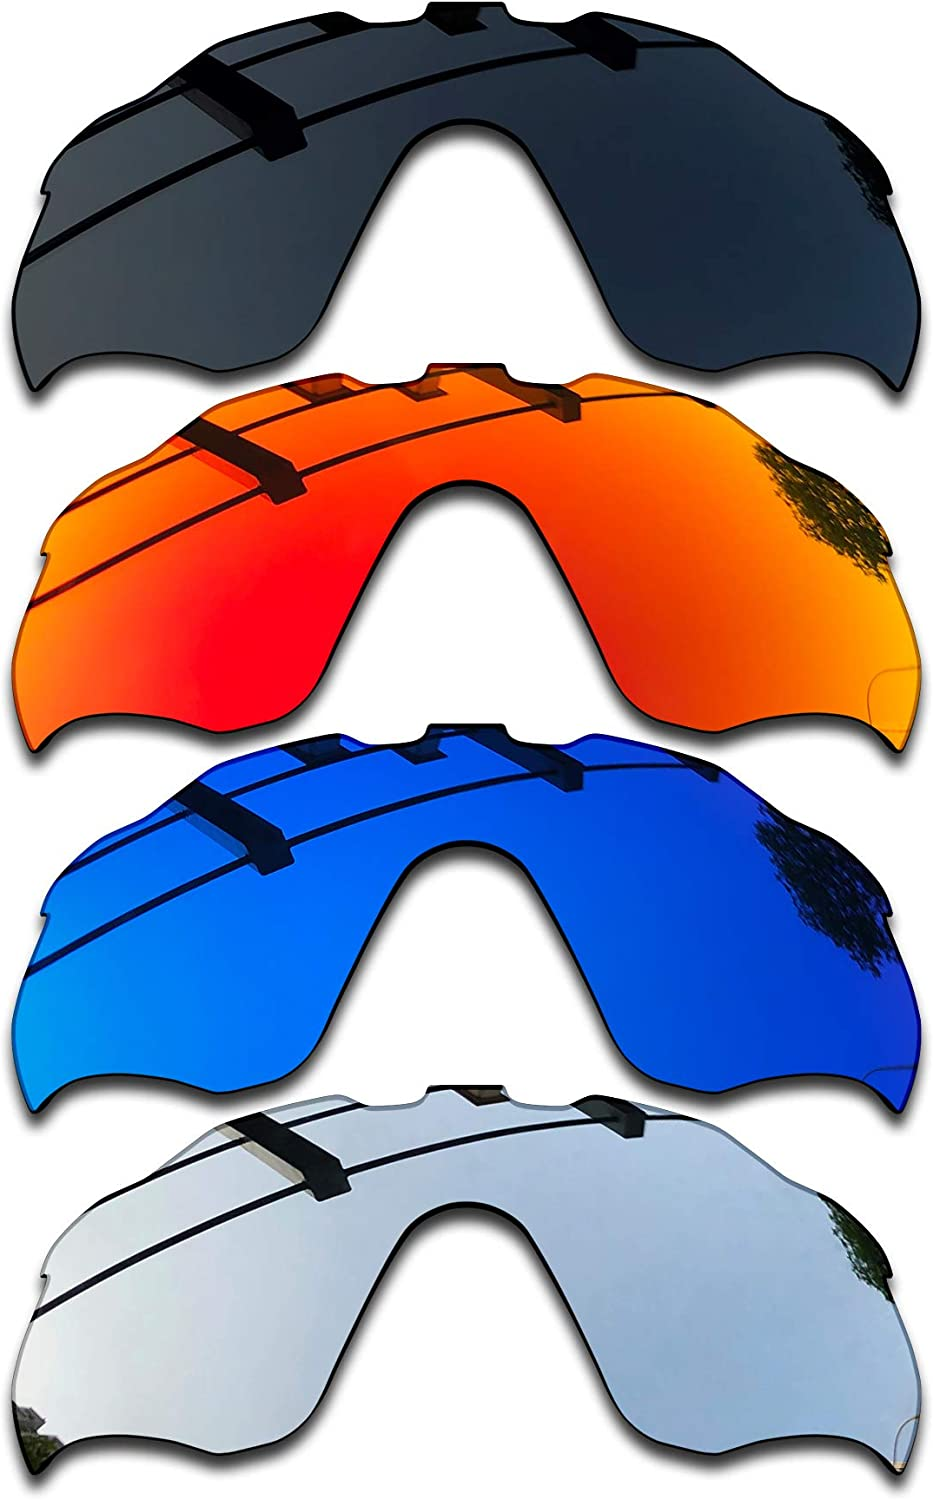 SEEABLE Premium Polarized Mirror Replacement Lenses for Oakley Radar Pace OO9333 Sunglasses